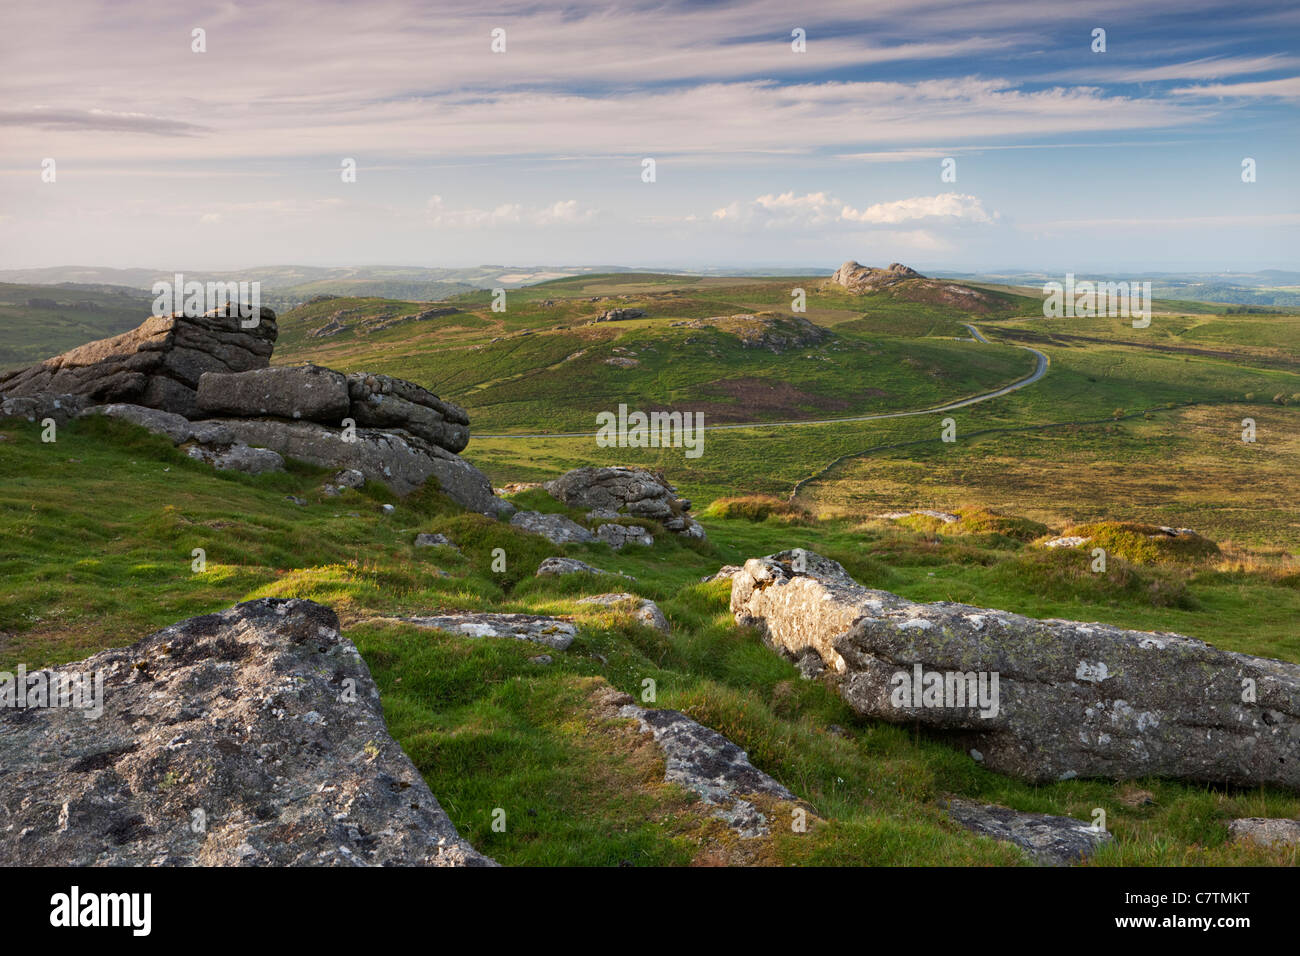 View towards Haytor and Saddle Tor from Rippon Tor, Dartmoor, Devon, England. Summer (July) 2011. - Stock Image